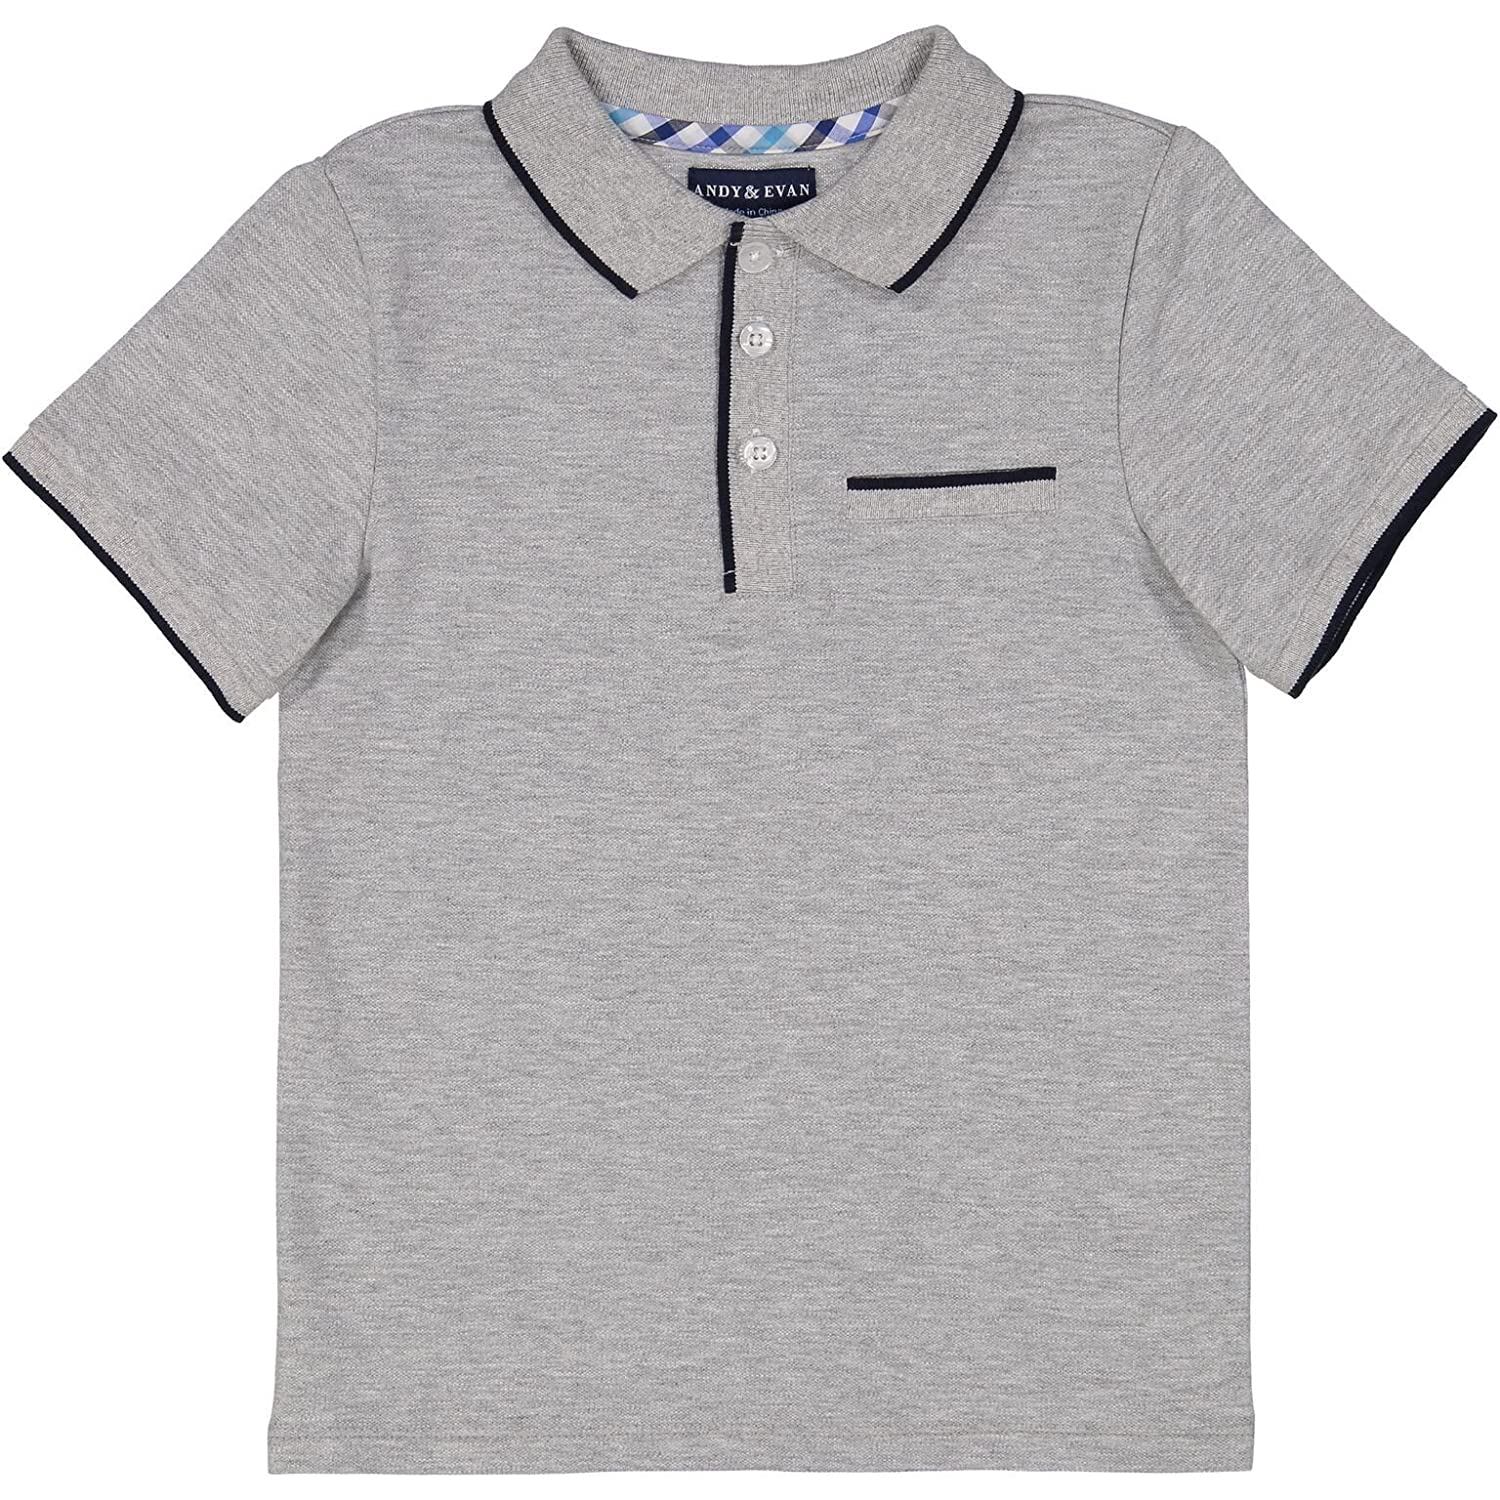 Andy & Evan Infant & Toddler Boy's Short Sleeve Polo Shirt